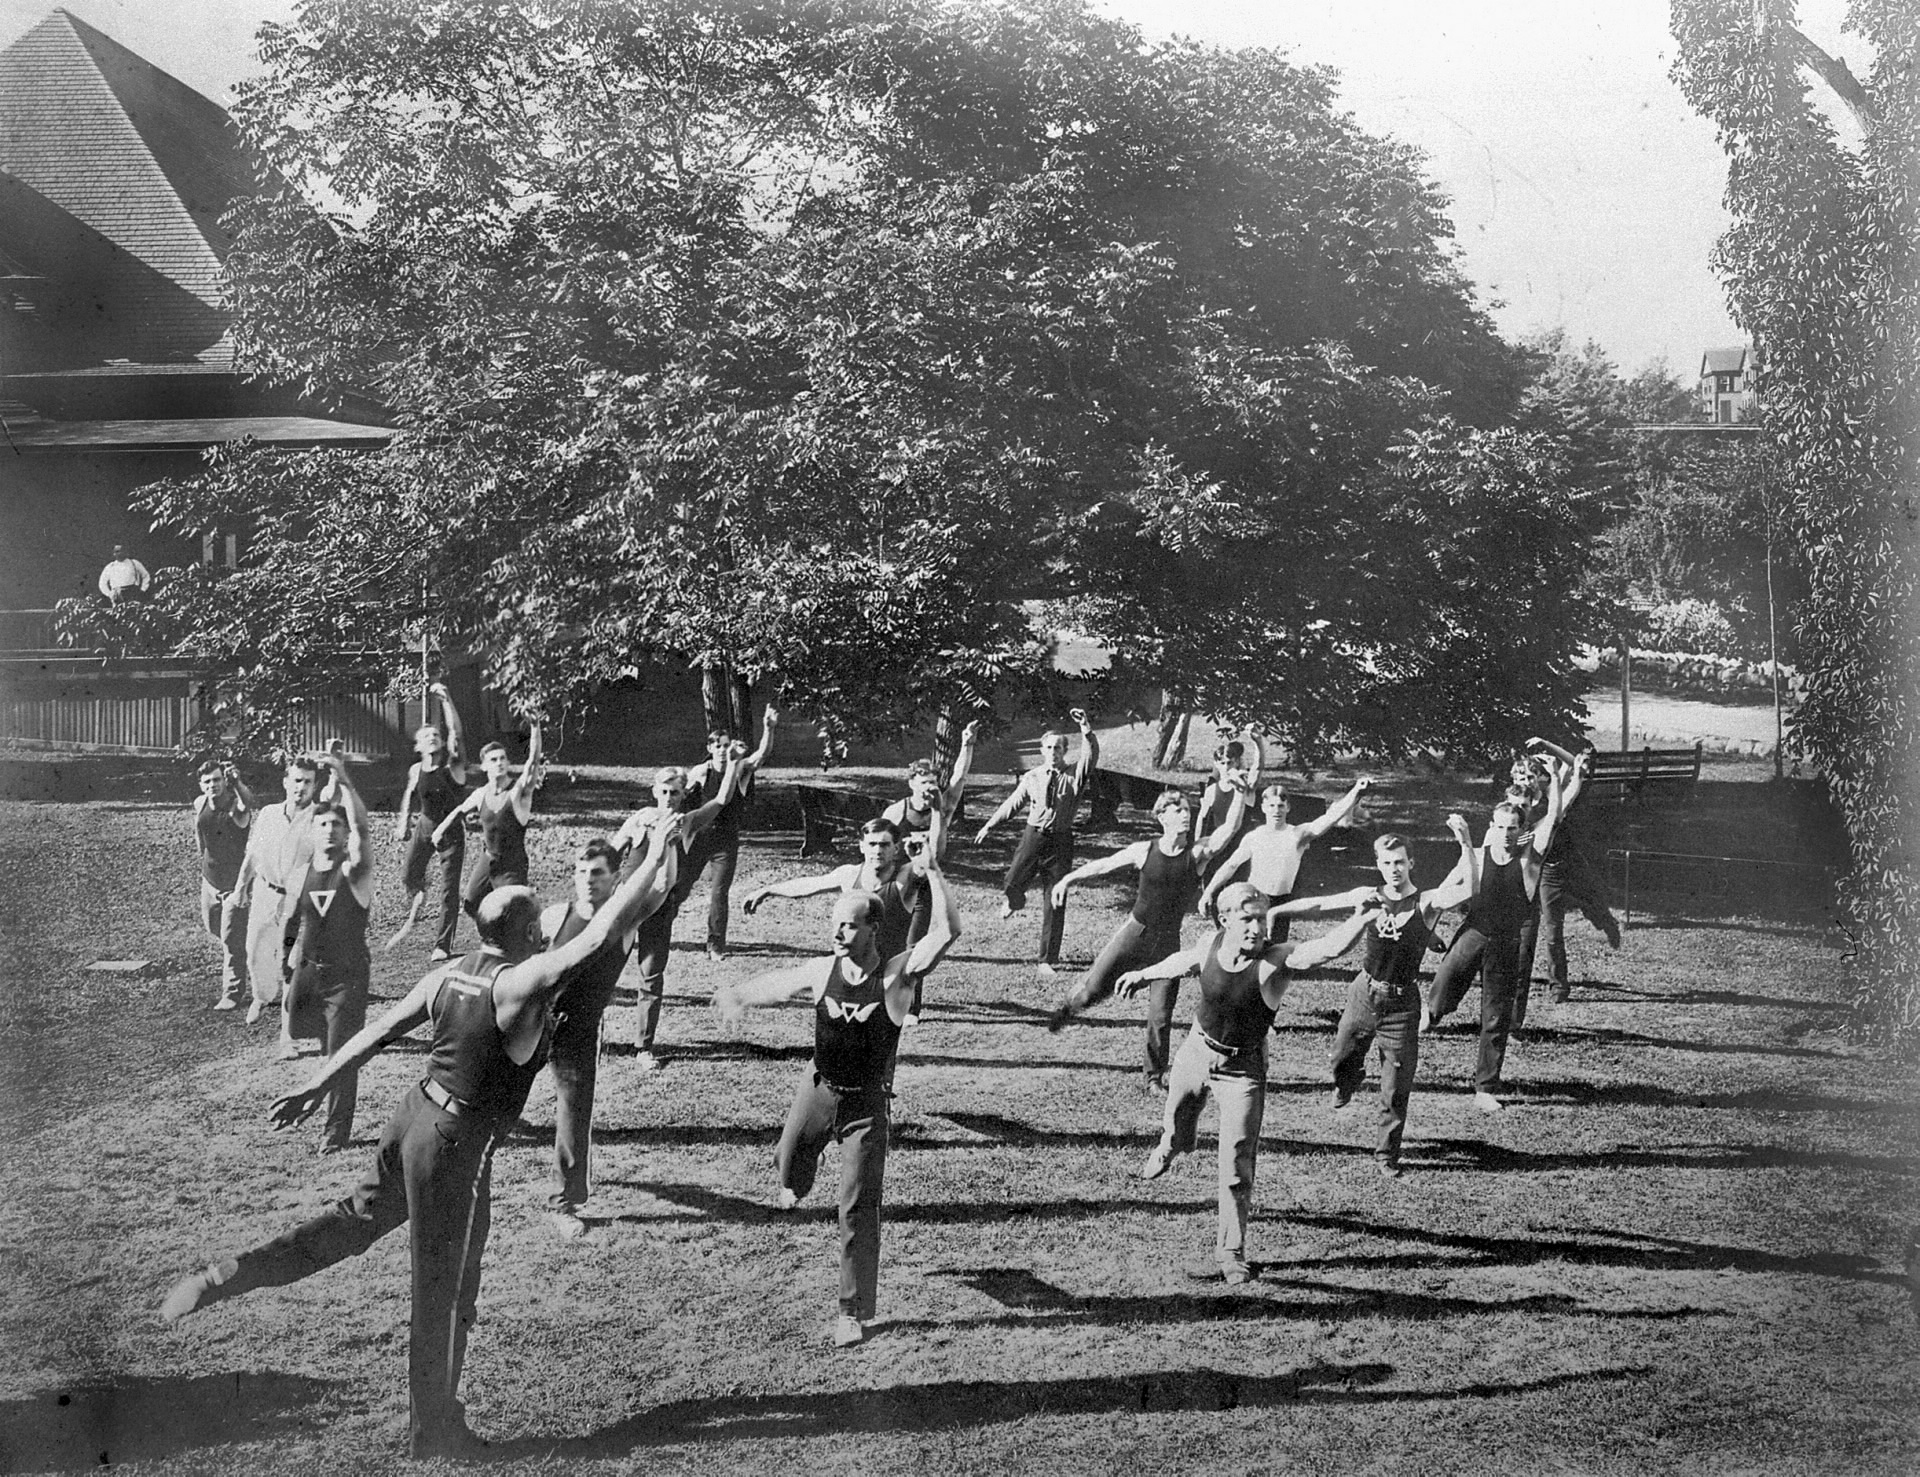 Young Men's Christian Association, Broadview Ave., calisthenics class Young Men's Christian Association, Broadview Ave., calisthenics class